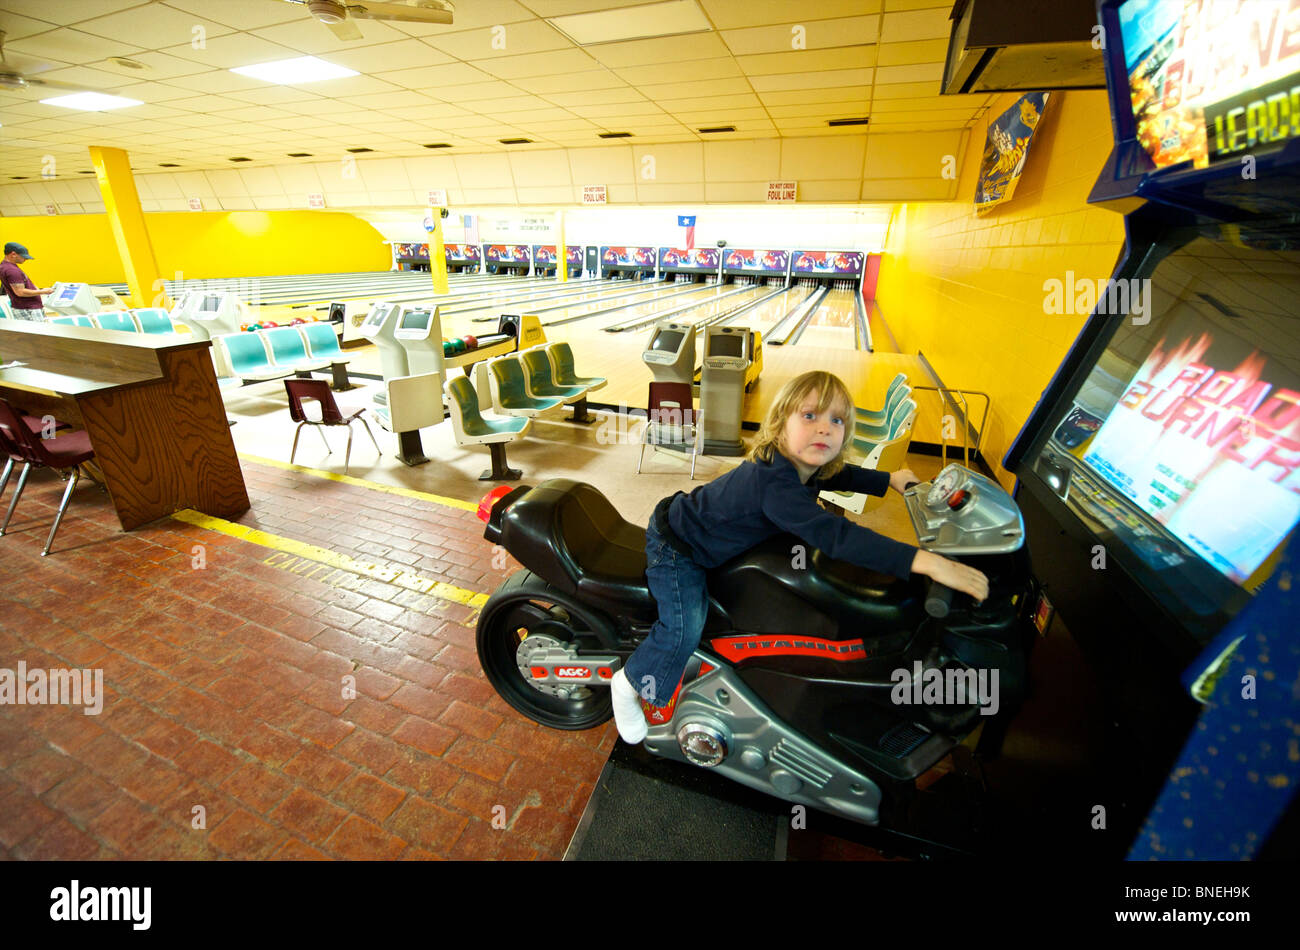 Three year old boy riding Motorcycle game in Bowling Hall Texas, USA Stock Photo